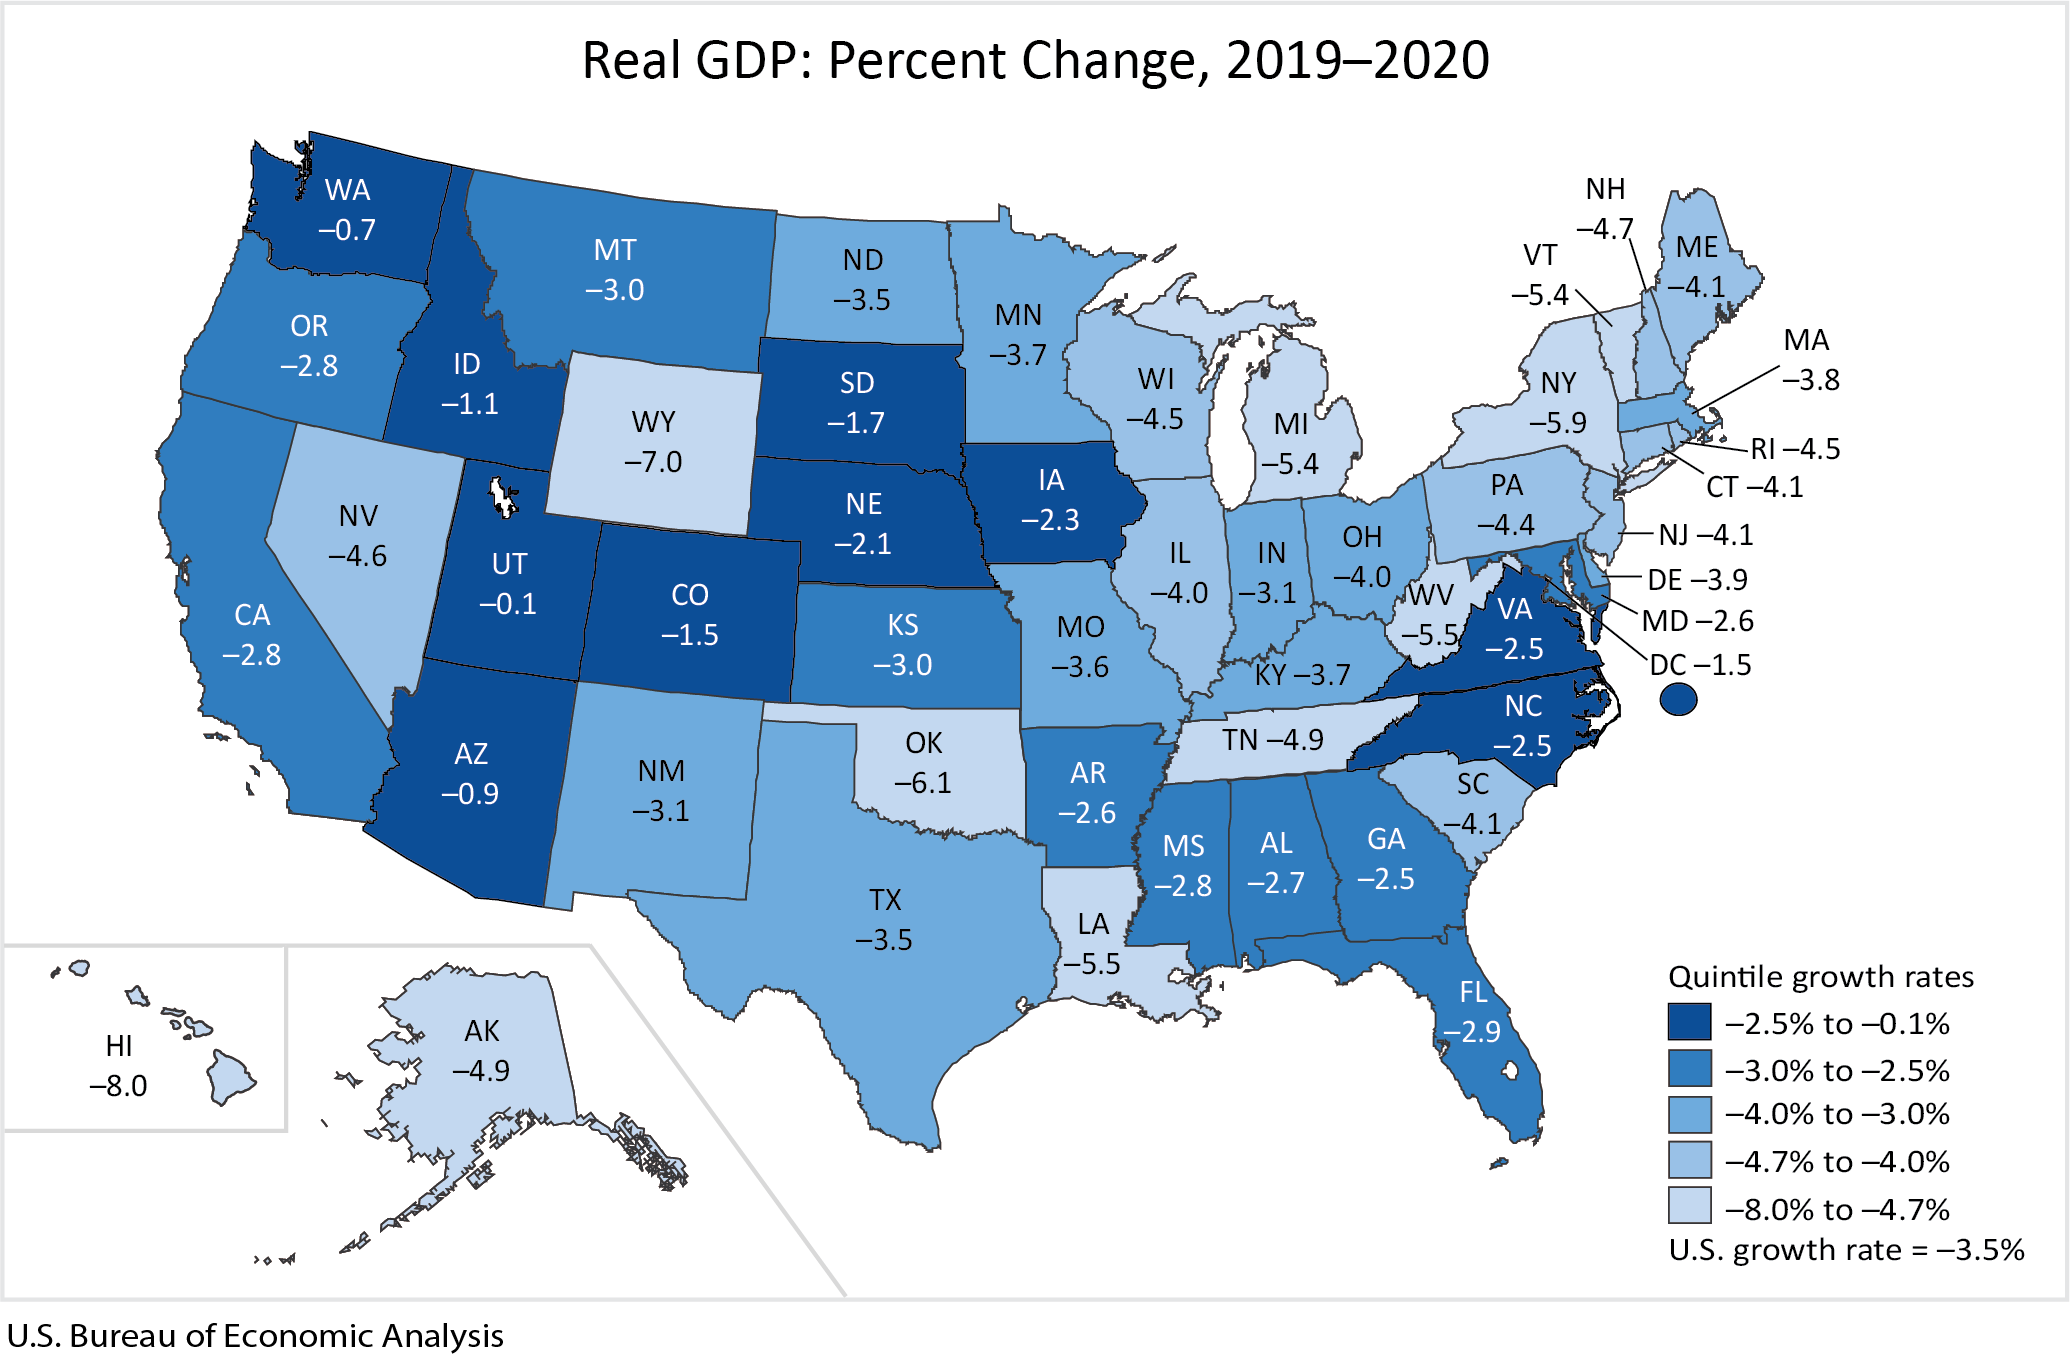 Real GDP: Percent Change, 2019-2020